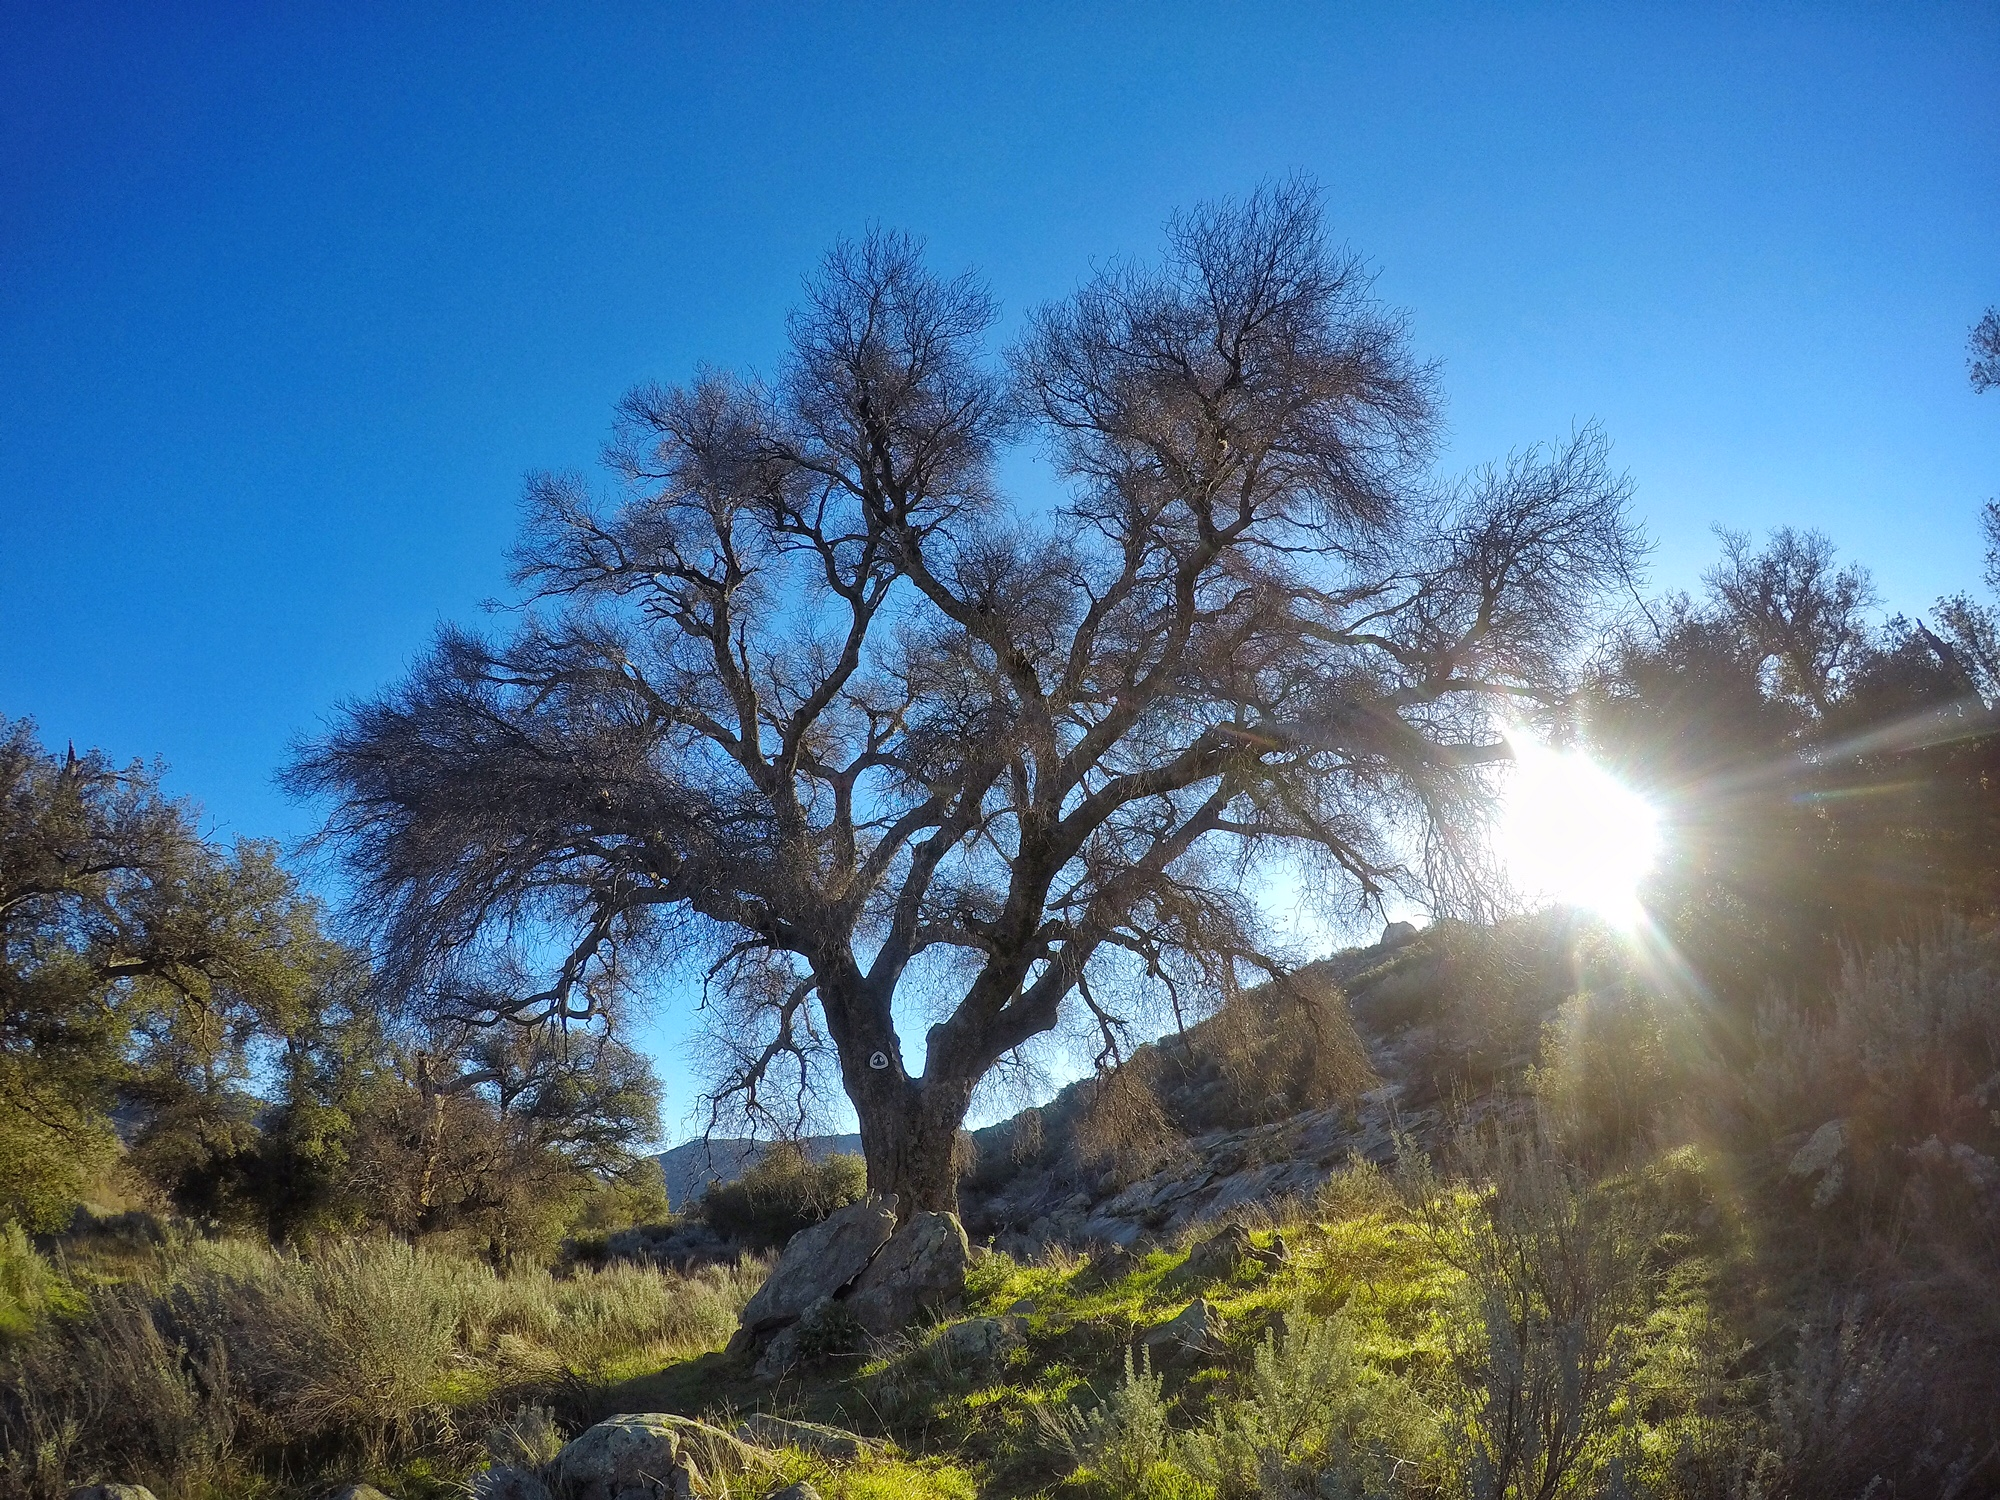 This distinctive oak marks the start of the hike to Kitchen Creek Falls, and is along the southern end of the PCT